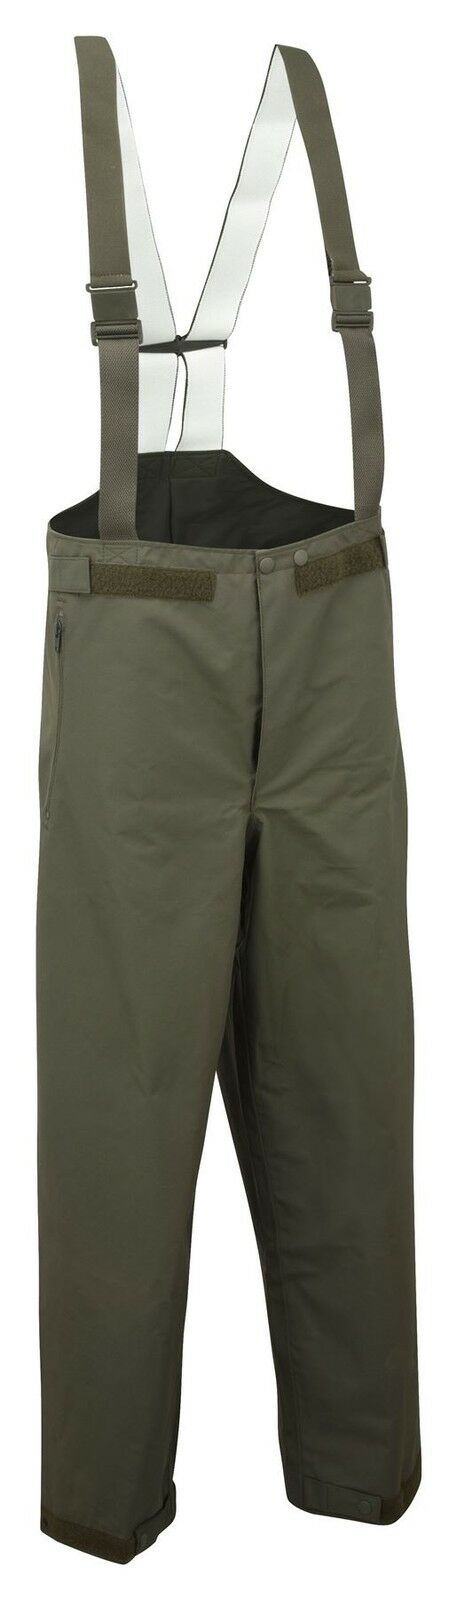 Genuine New German Military Goretex Dungaree Pants